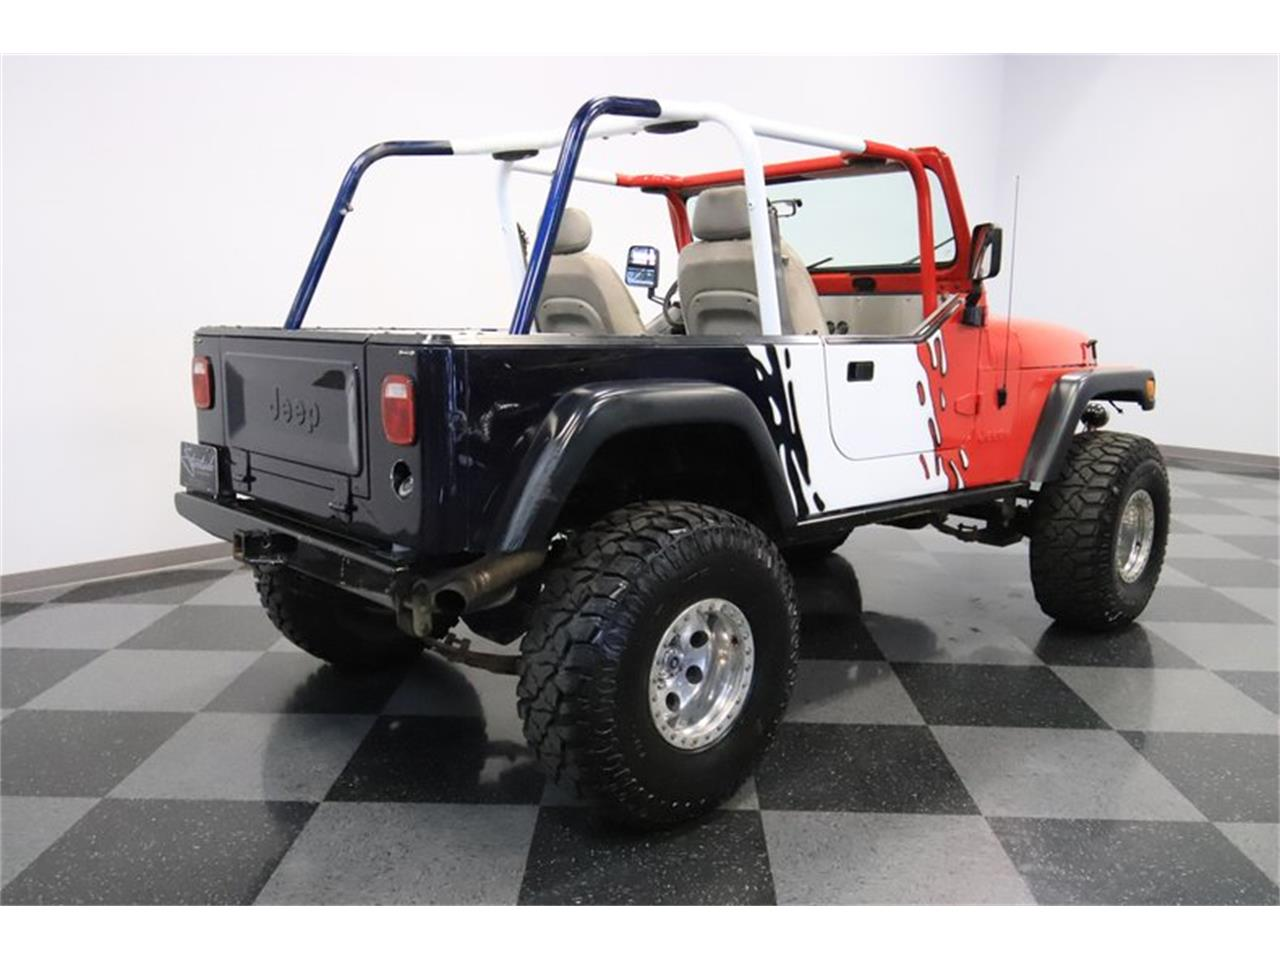 1983 Jeep CJ8 Scrambler for sale in Mesa, AZ – photo 12